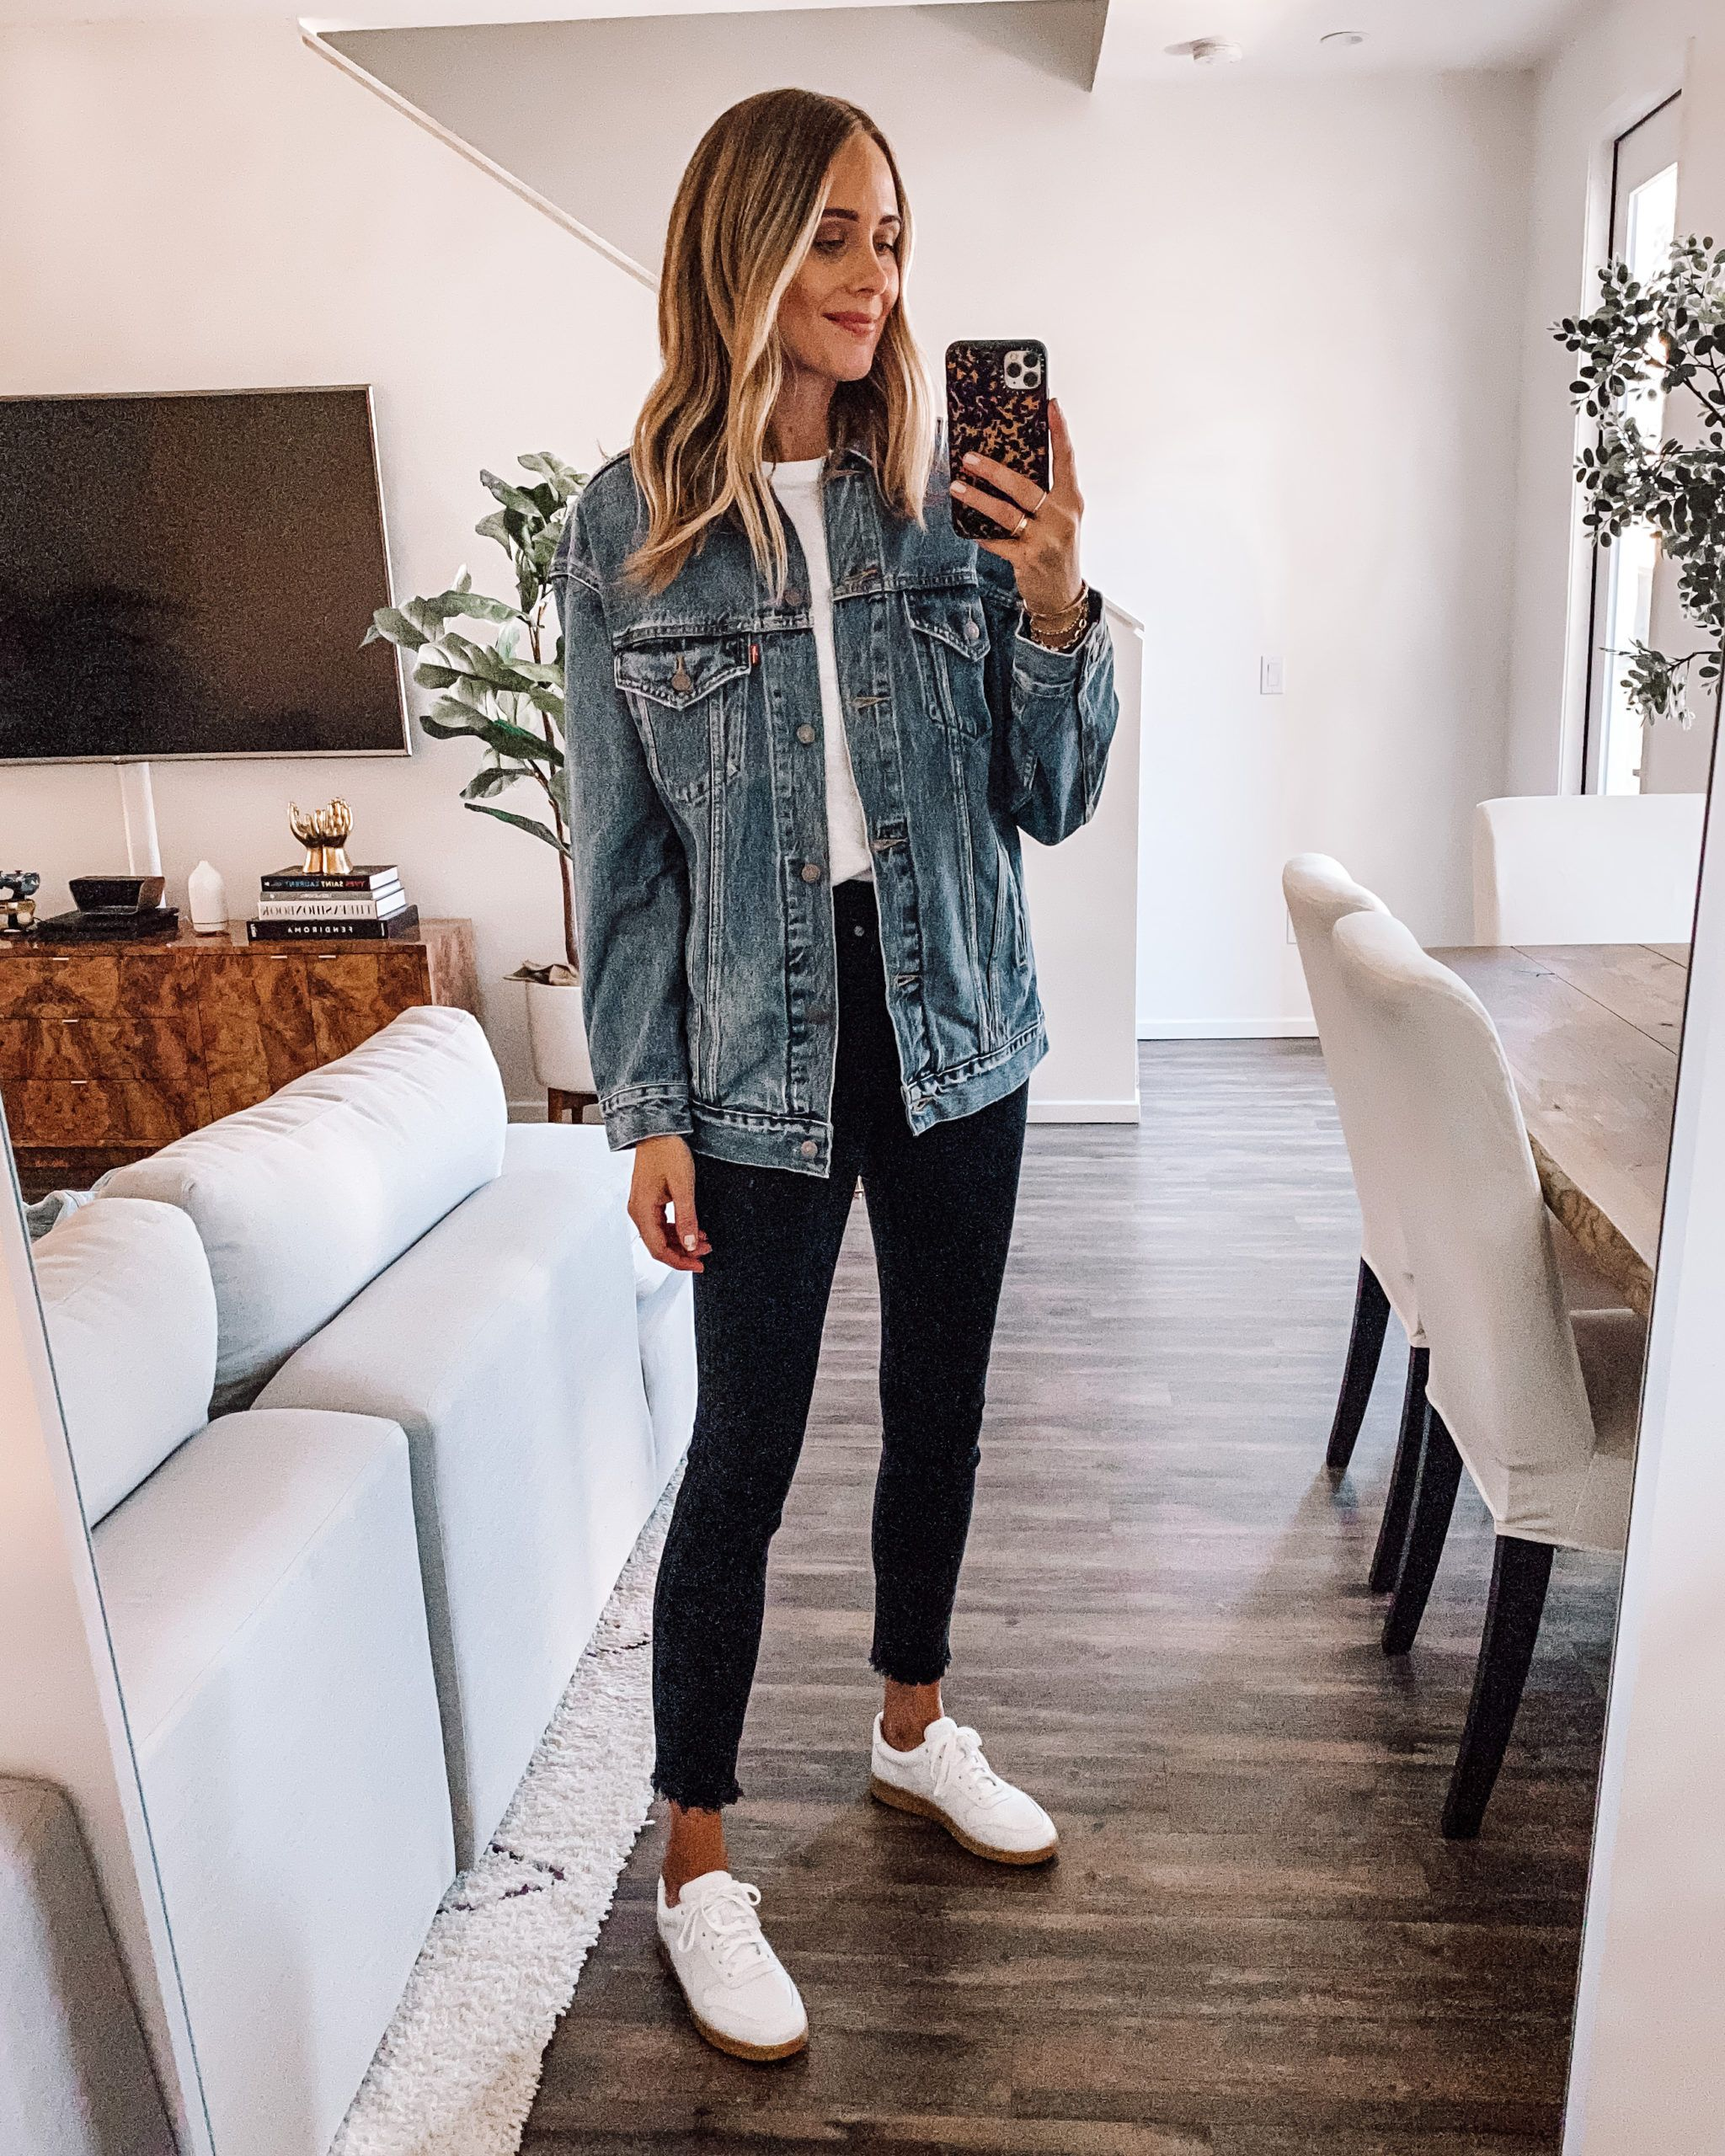 Fall Jacket And Skinny Jeans Outfit